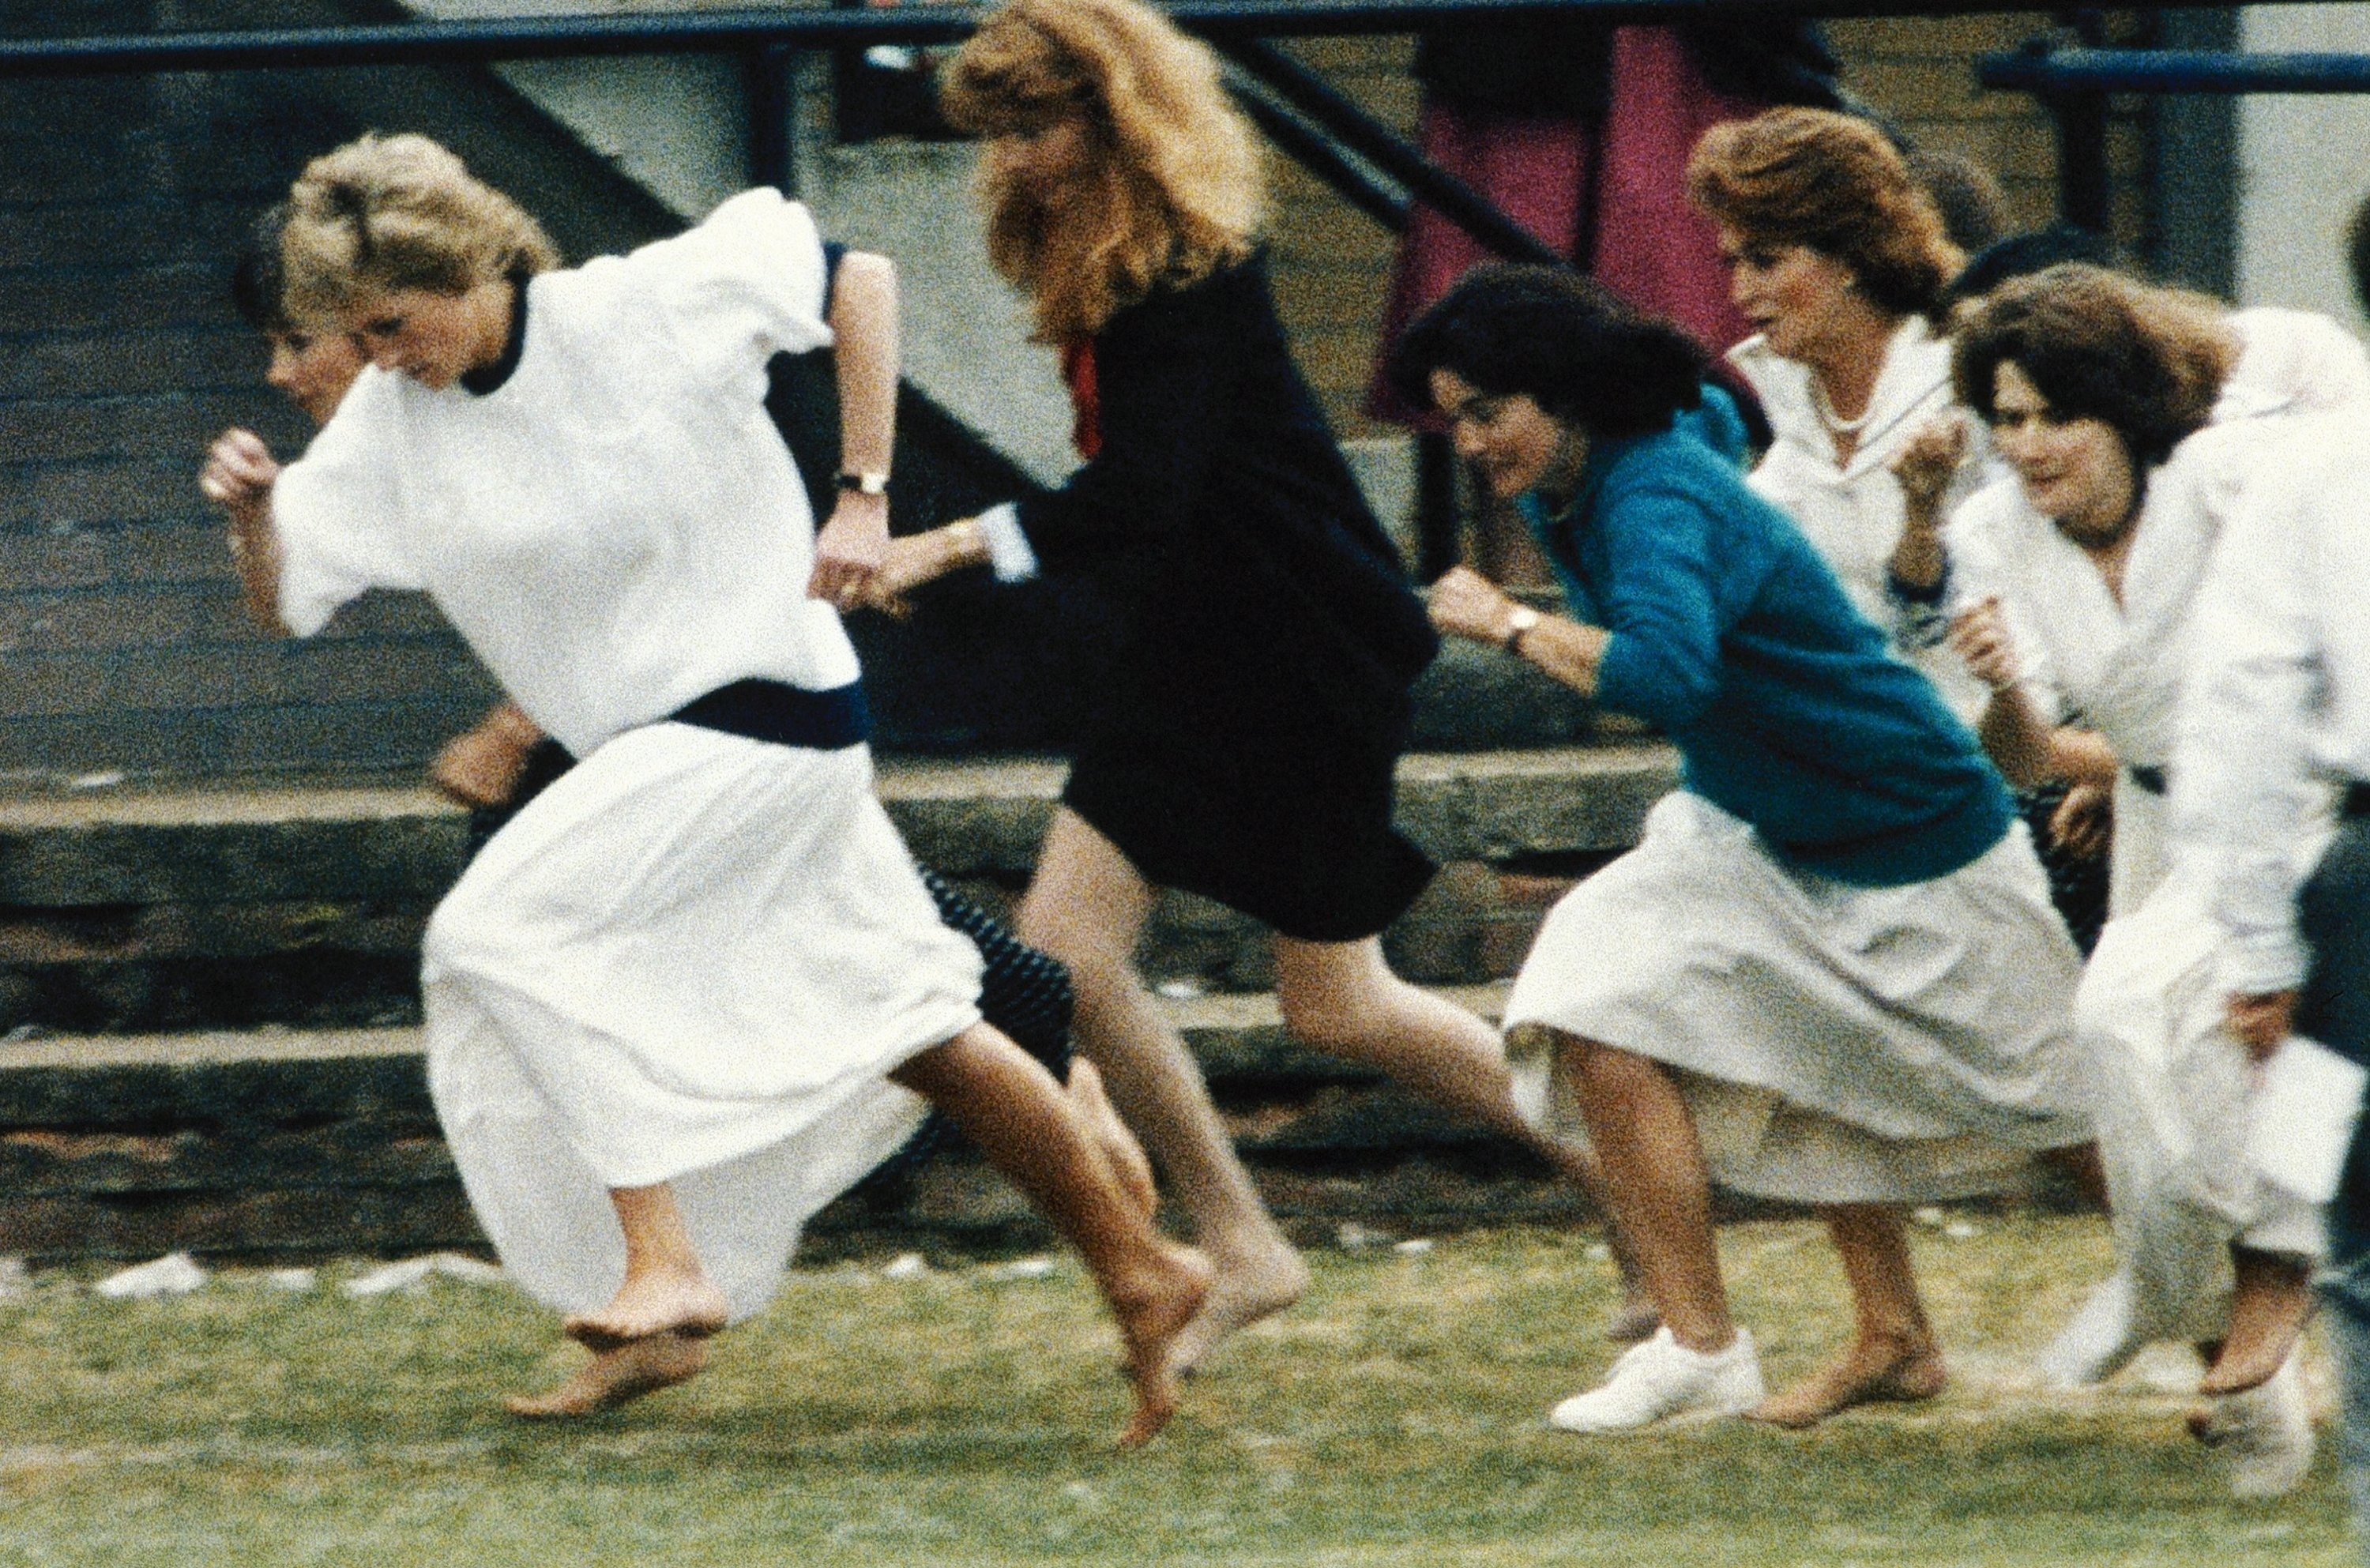 Britain's Princess Diana wearing a white dress, races ahead during the mother's race, held during a sports day for Wetherby school, where her son Prince William is a pupil, London, U.K., June 28, 1989. (AP Photo)